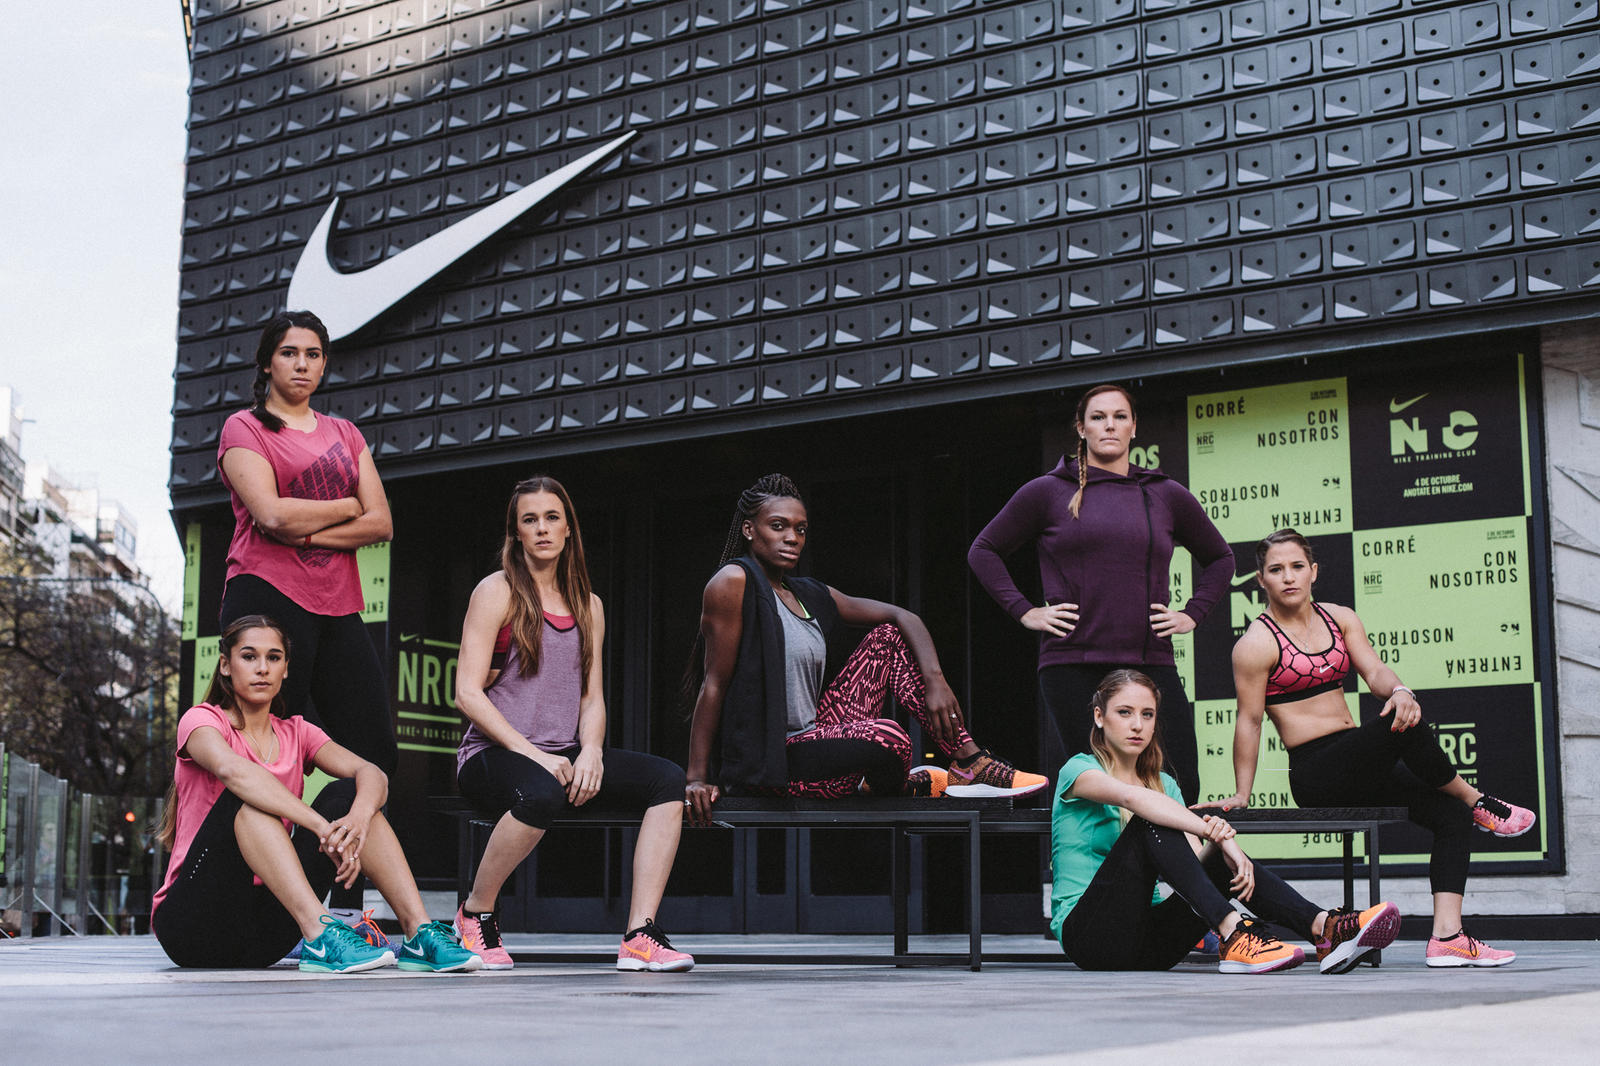 Nike Buenos Aires